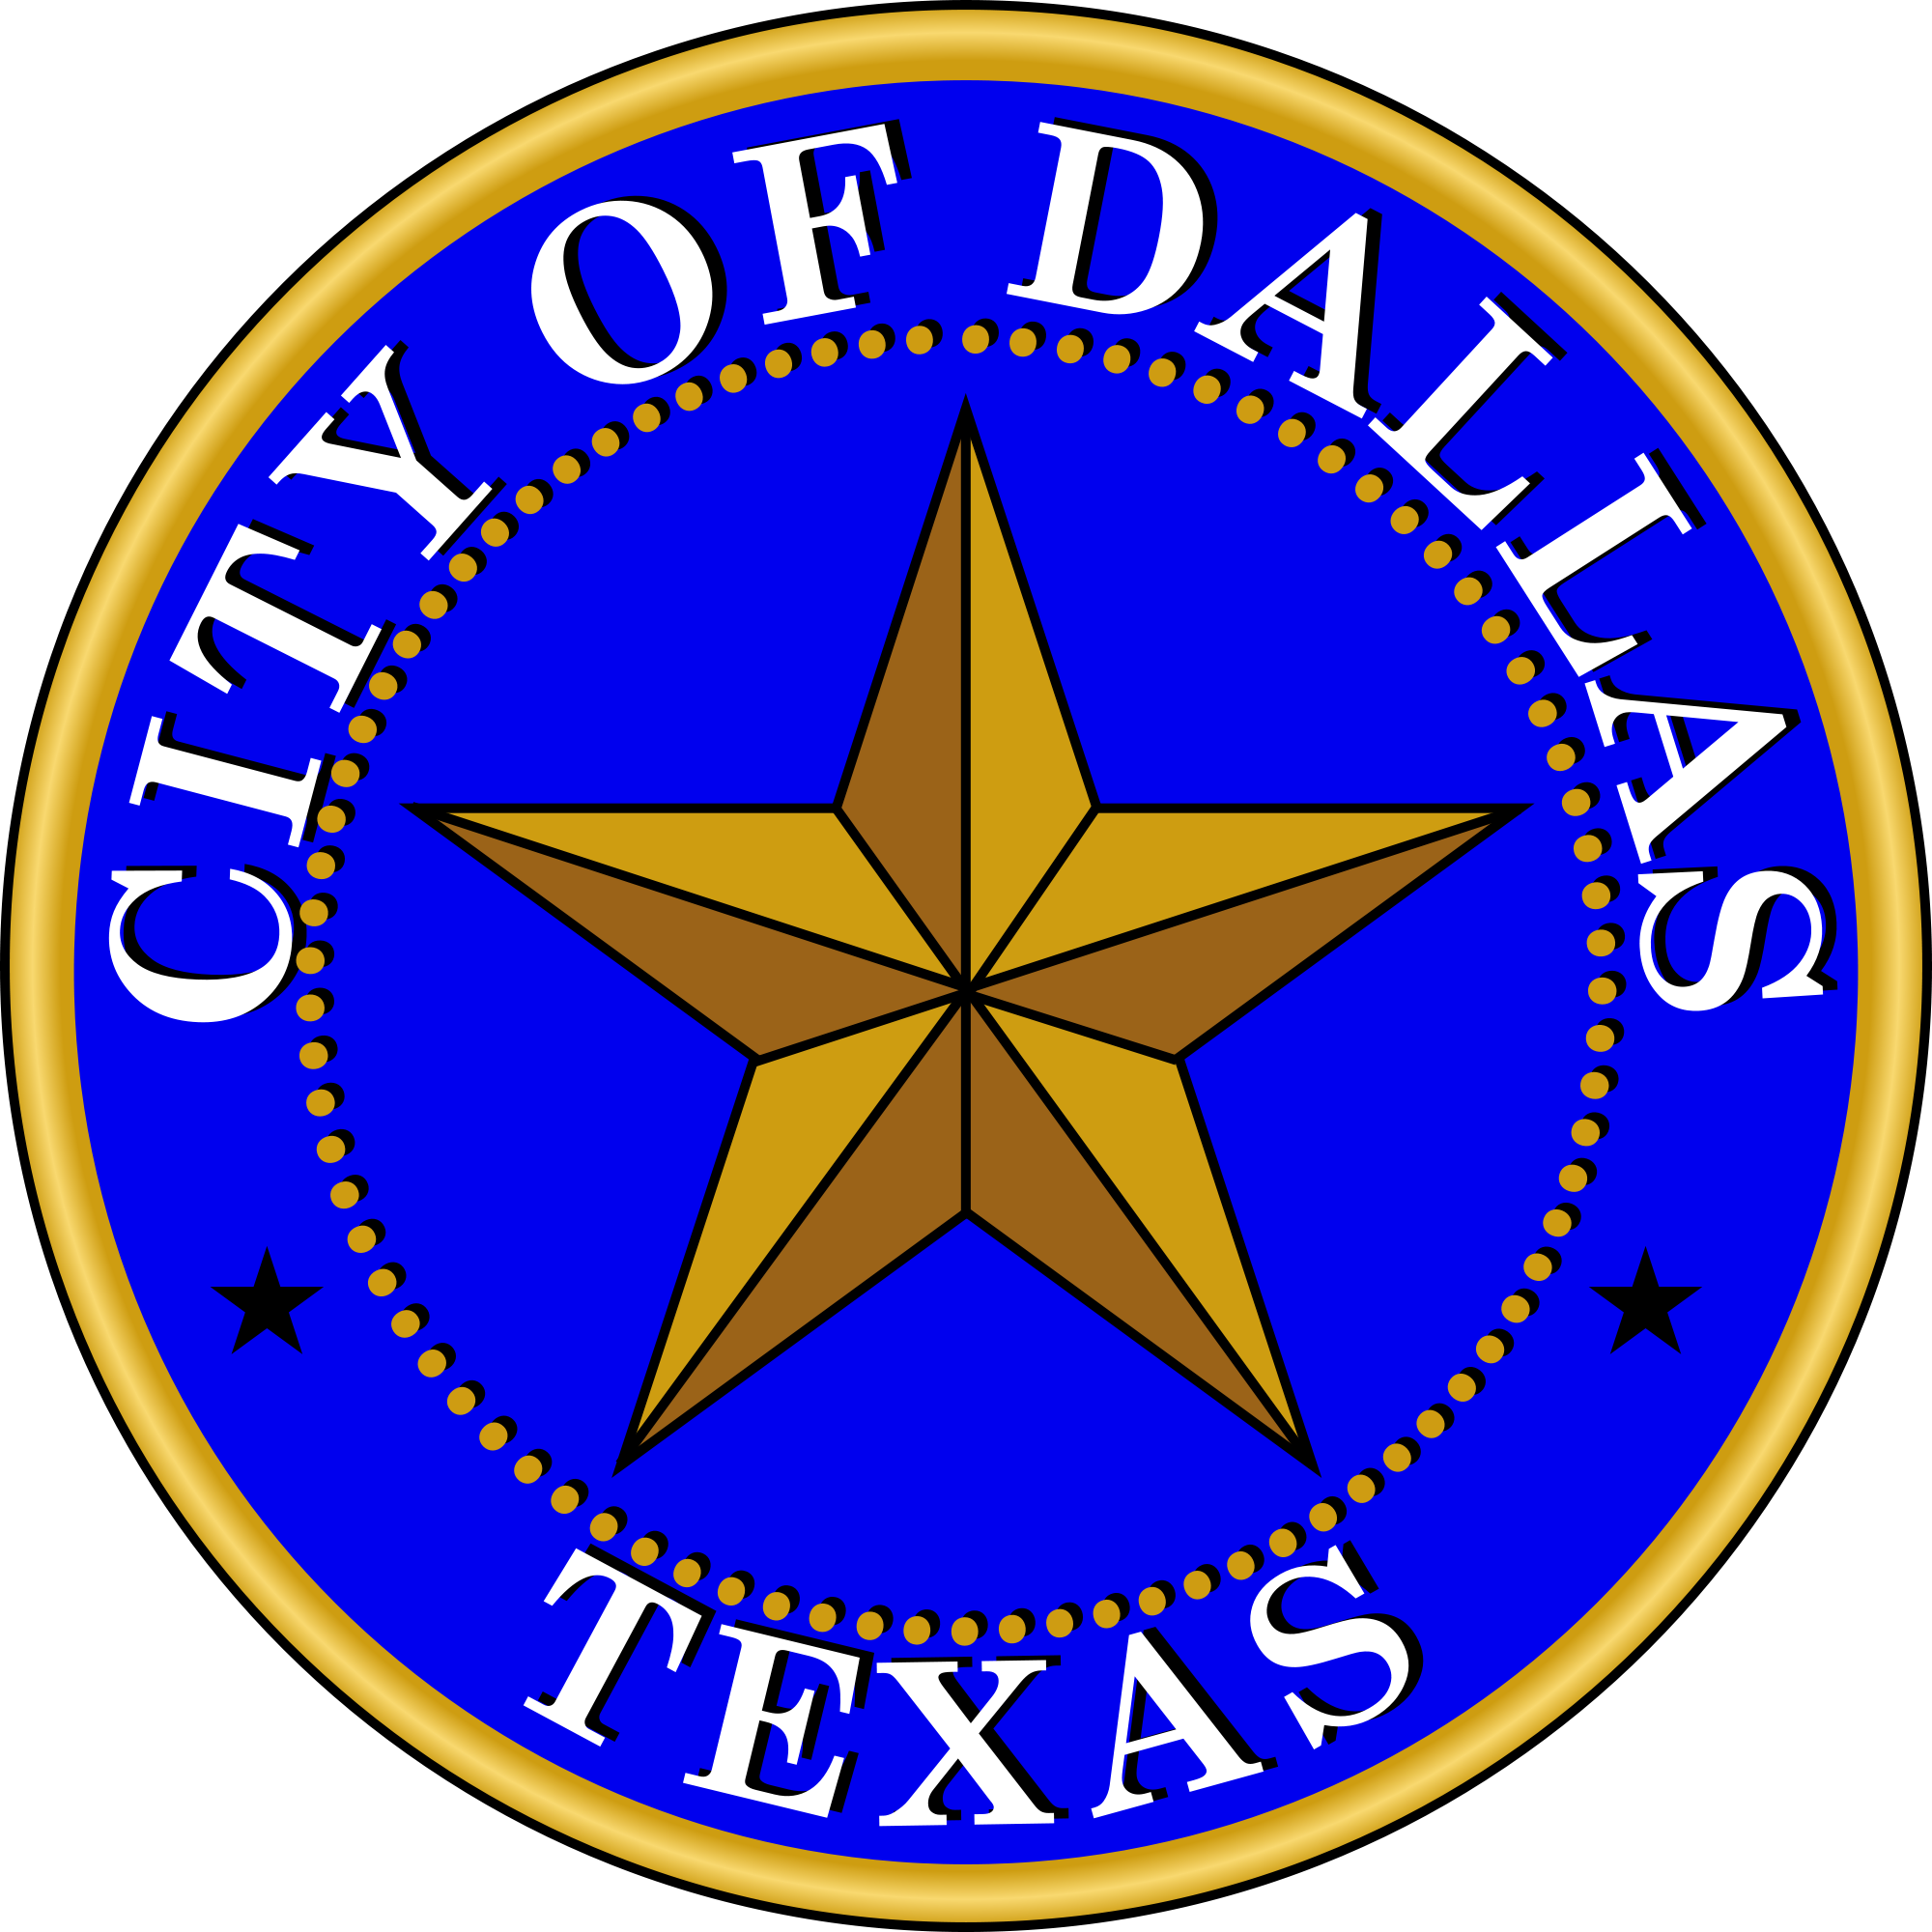 Official seal of Dallas, Texas